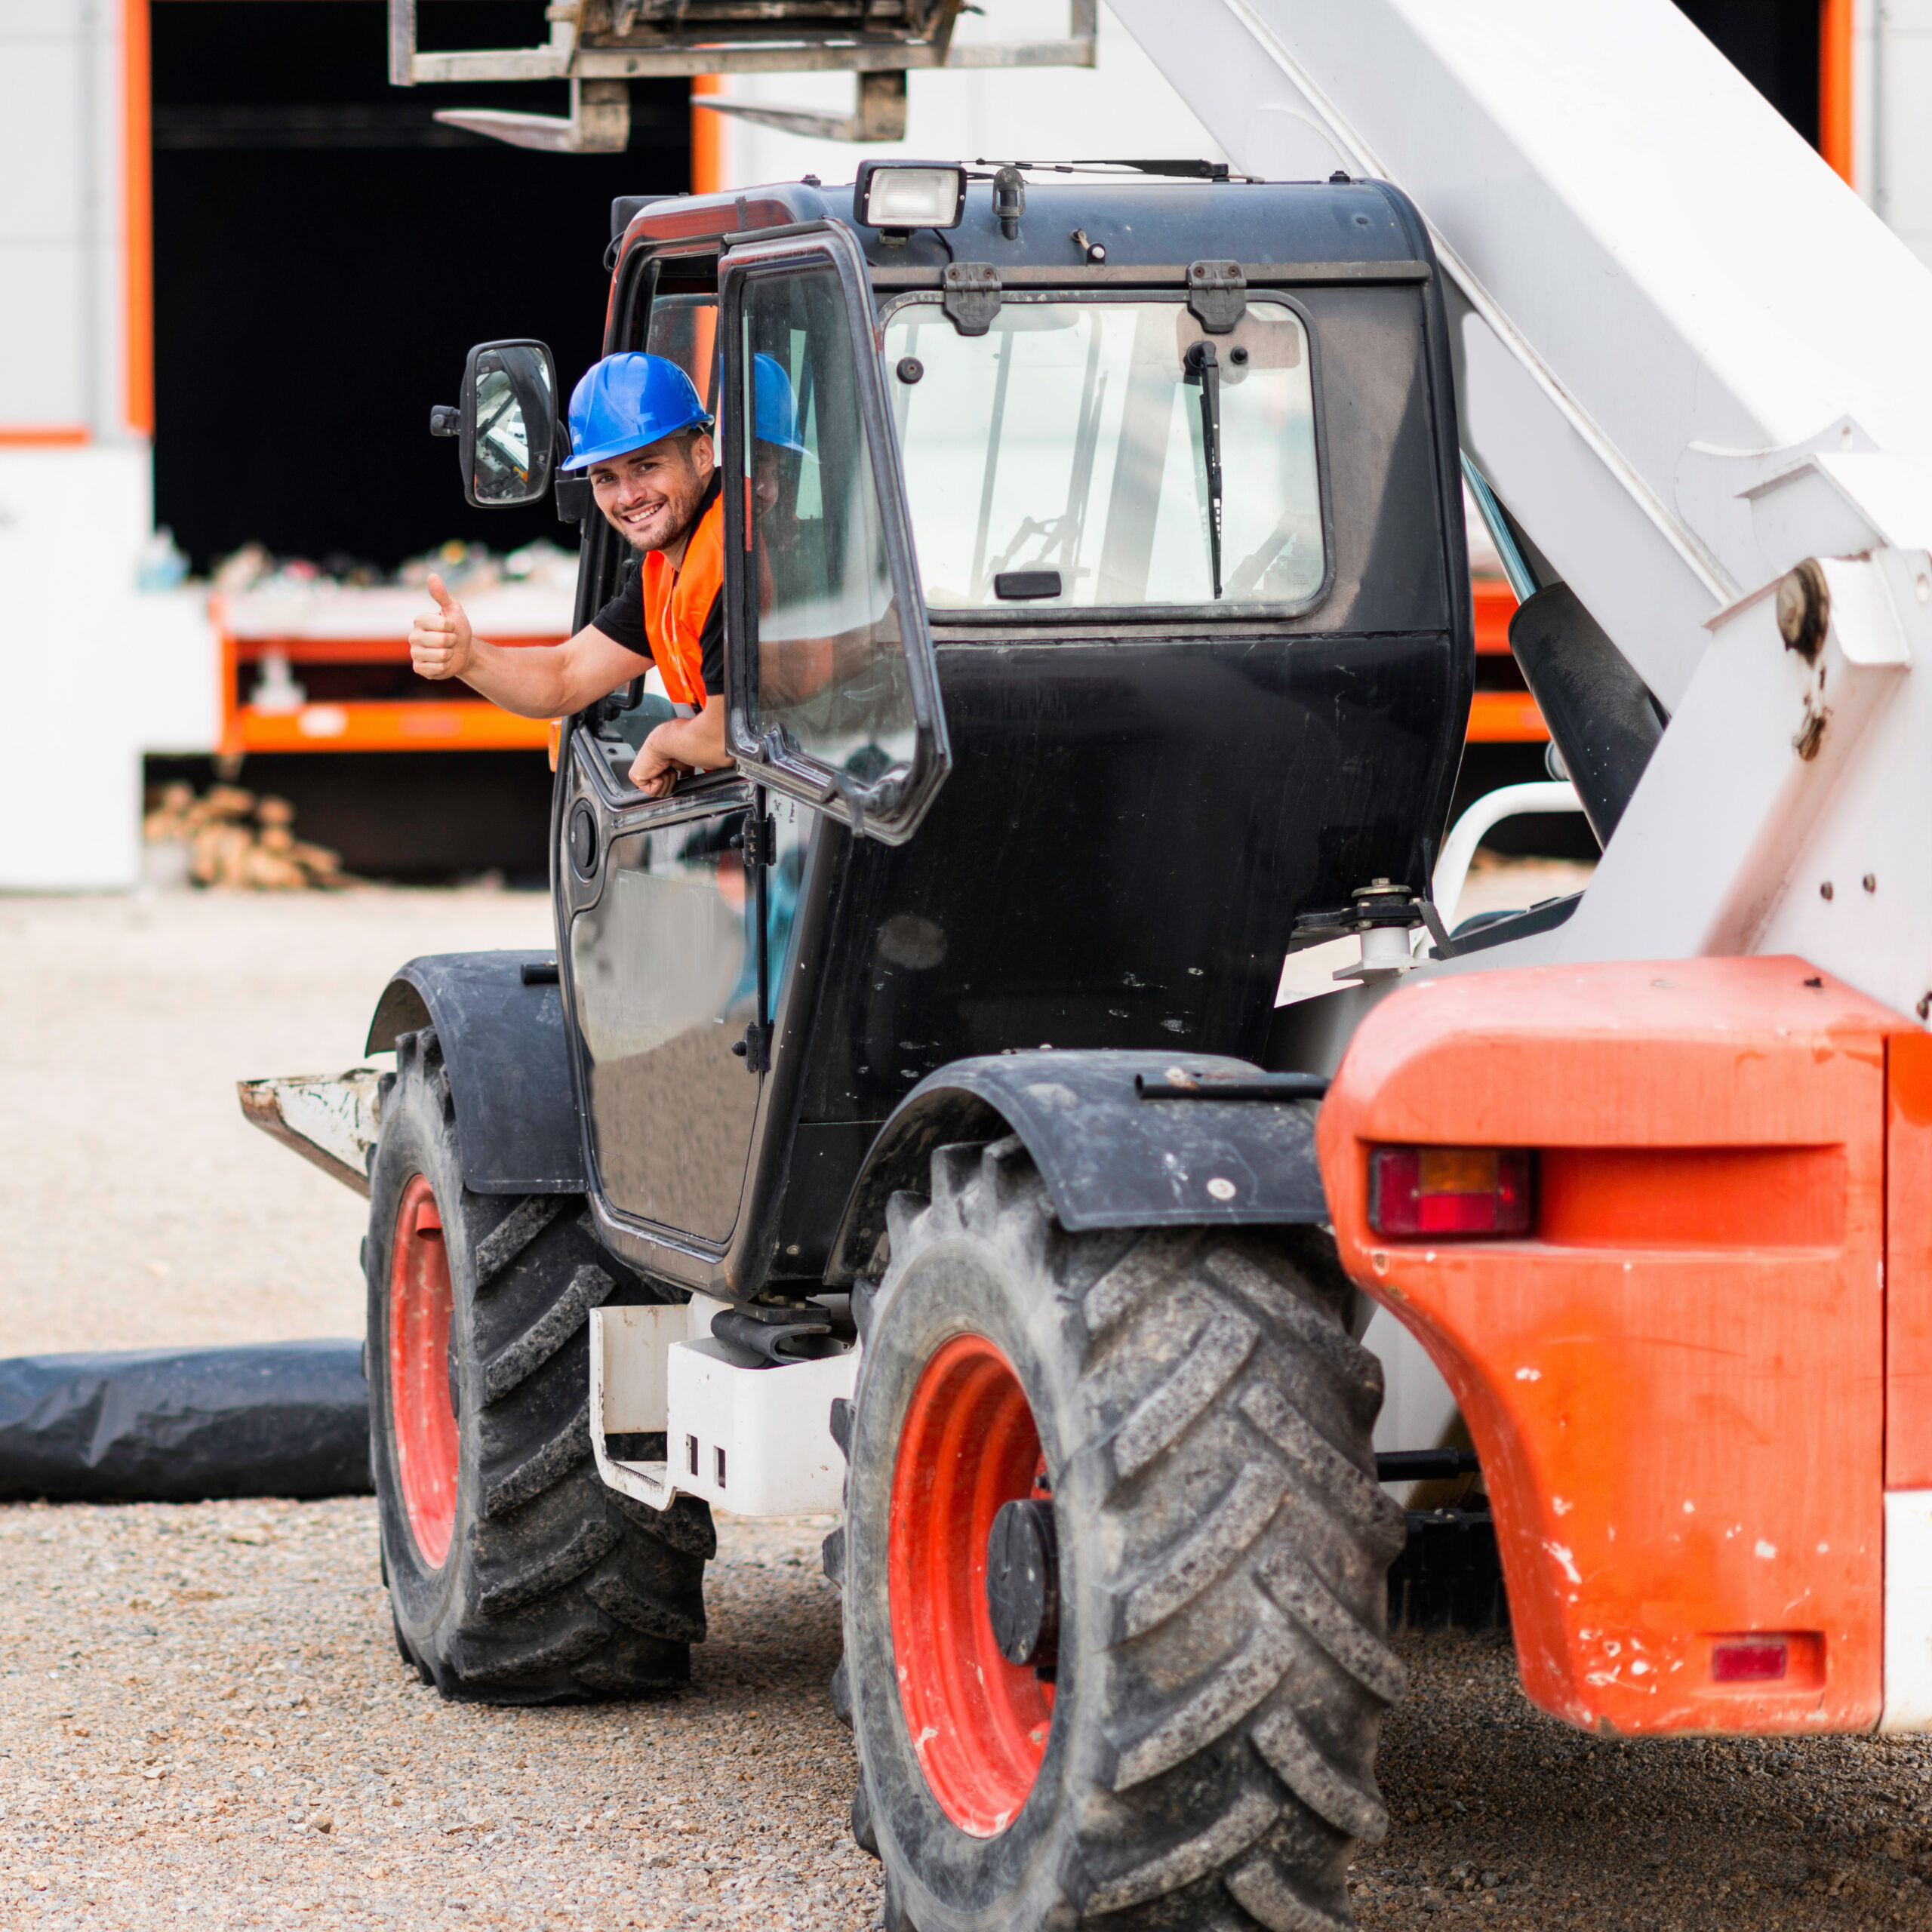 My Tips For Operating A Rough Terrain Forklift